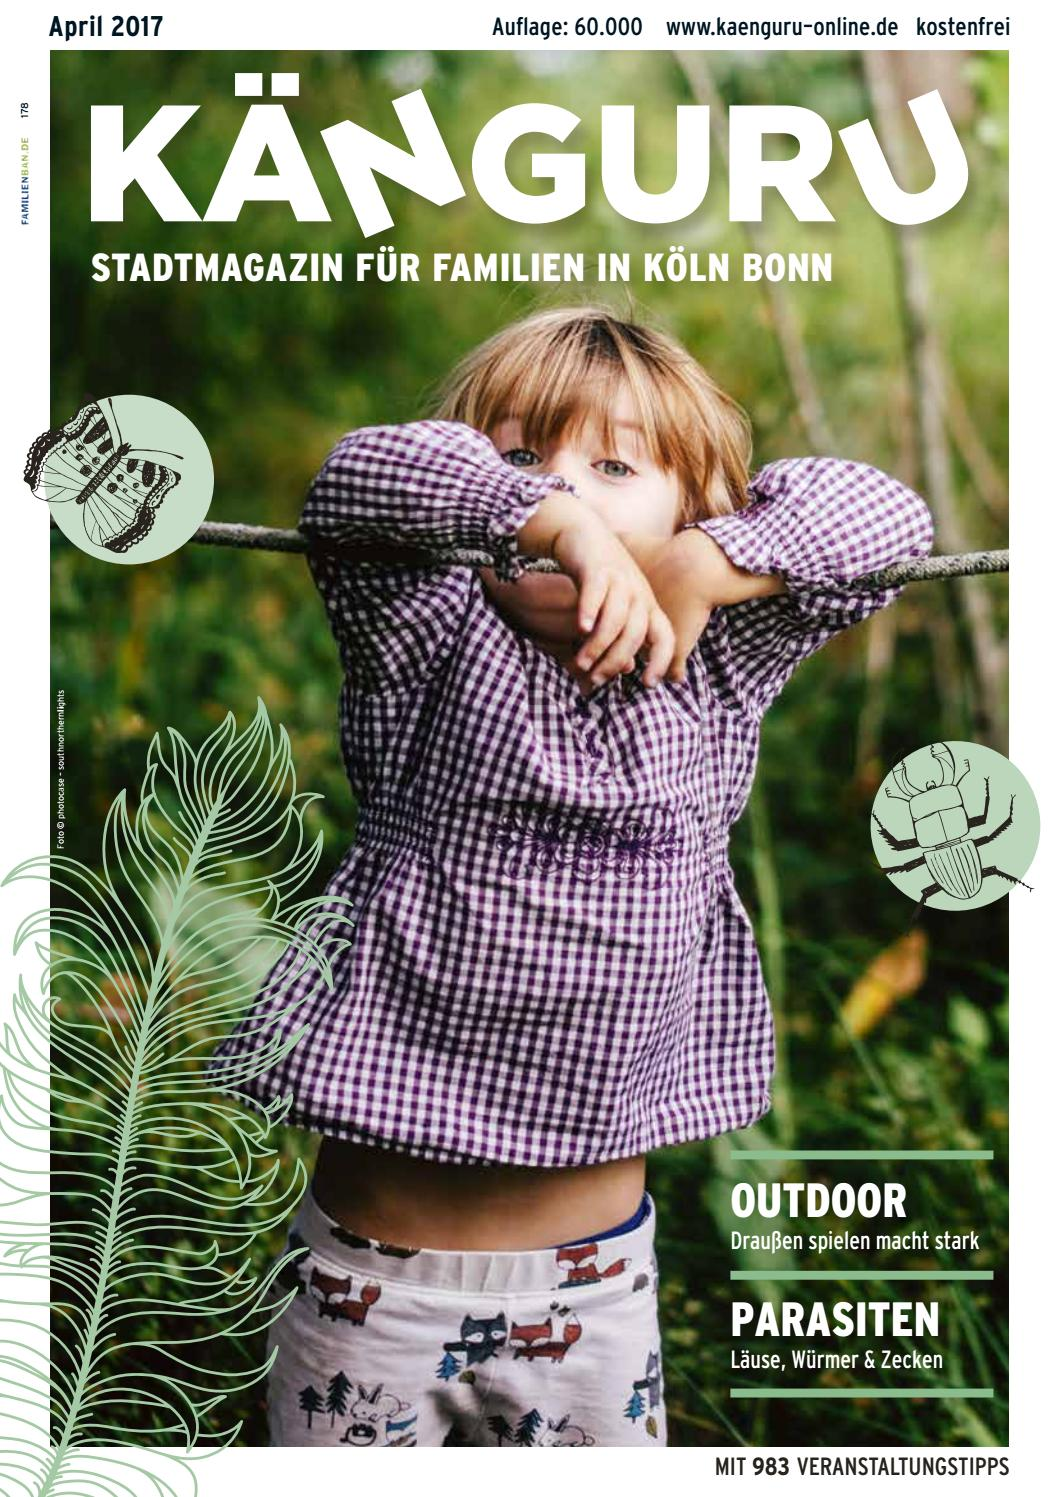 kanguru stadtmagazin fur familien in kolnbonn april 2017 by kanguru colonia verlag issuu